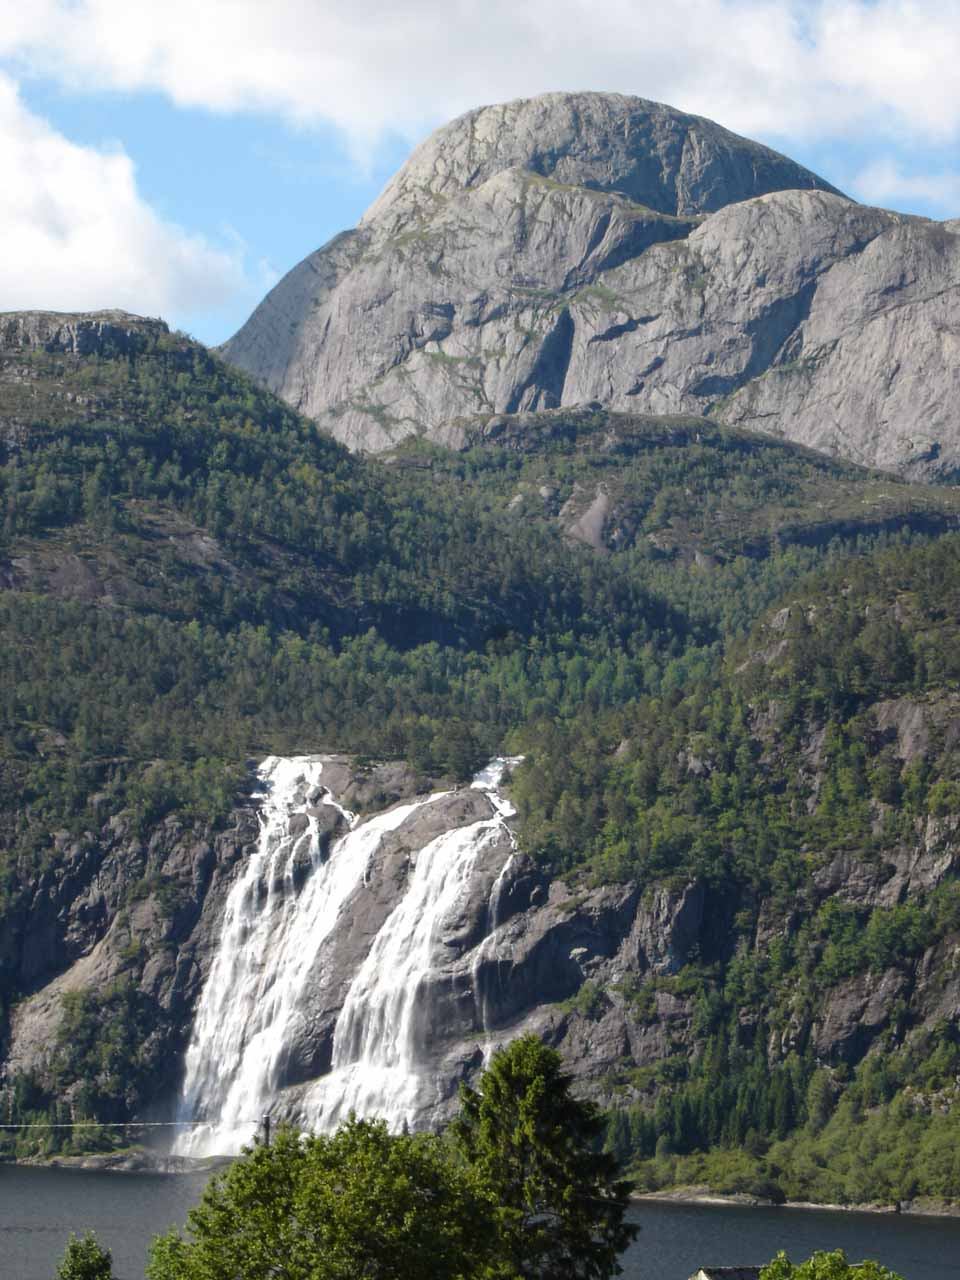 Last look back at Laukelandsfossen and Laukelandshesten as we made our way back to the E39